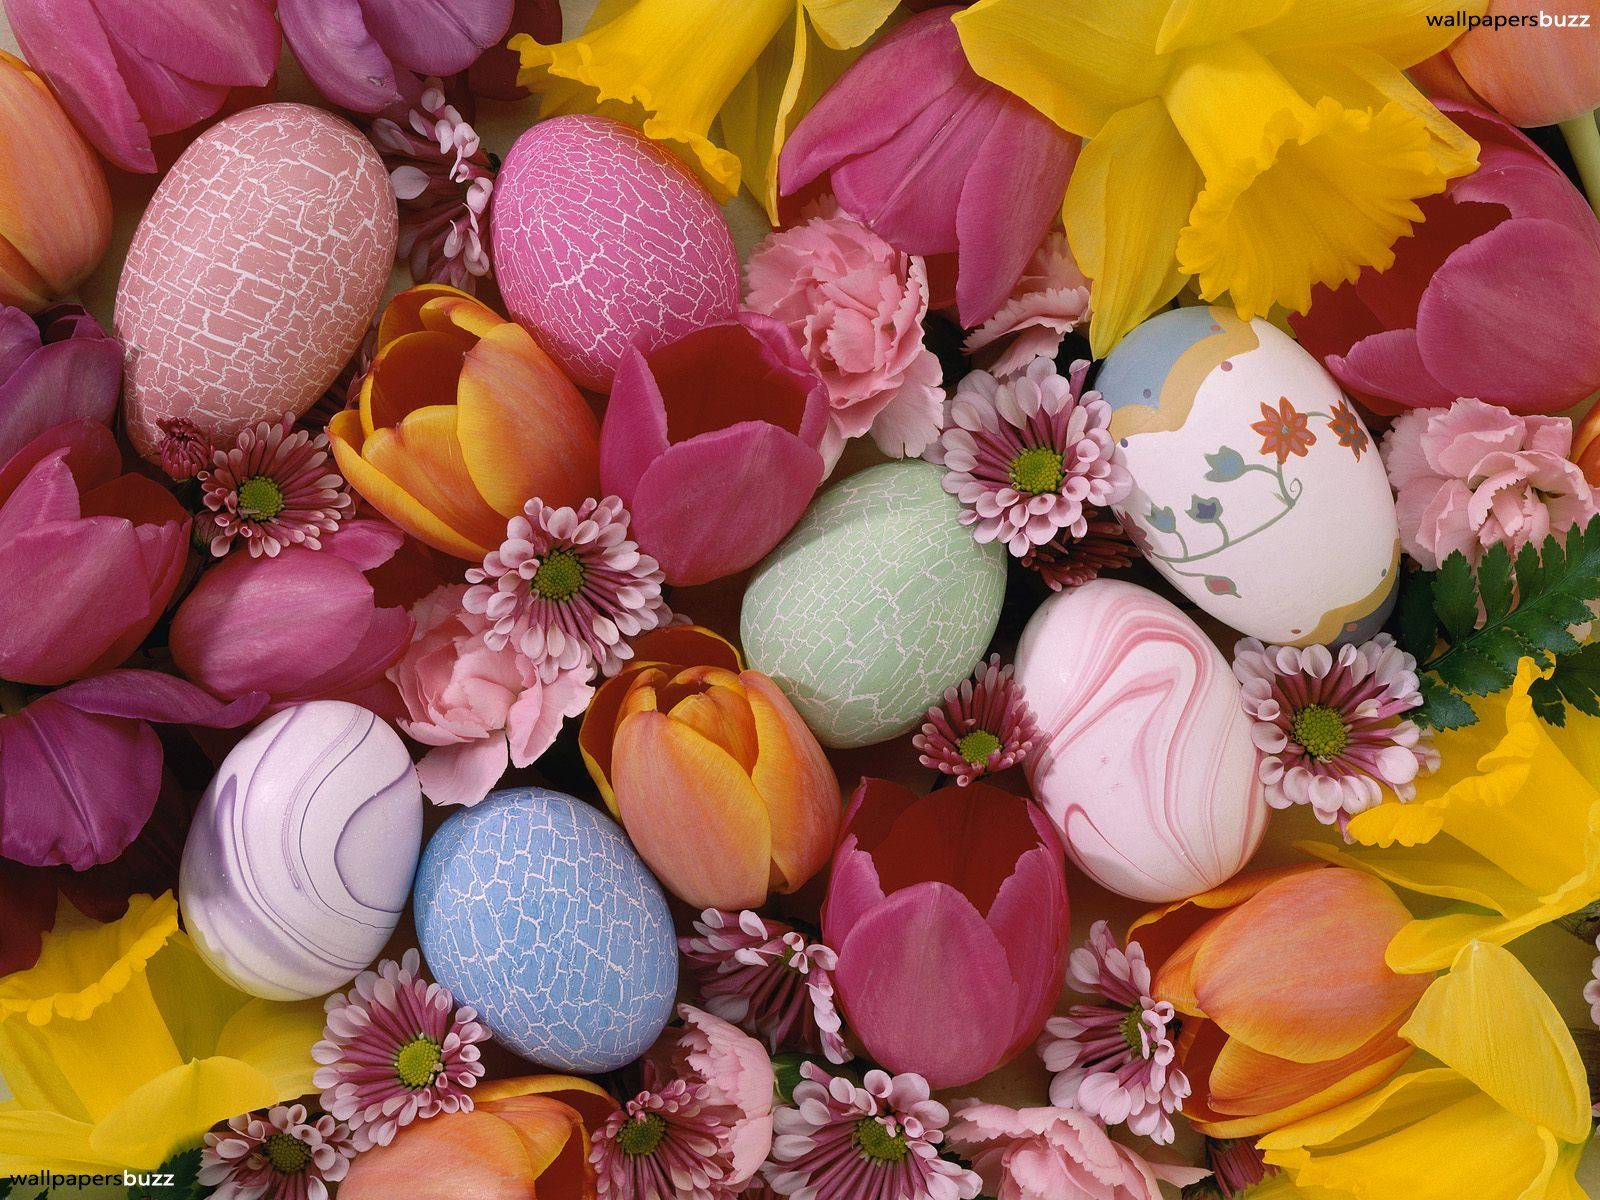 1600x1200 Easter eggs and flowers HD Wallpaper